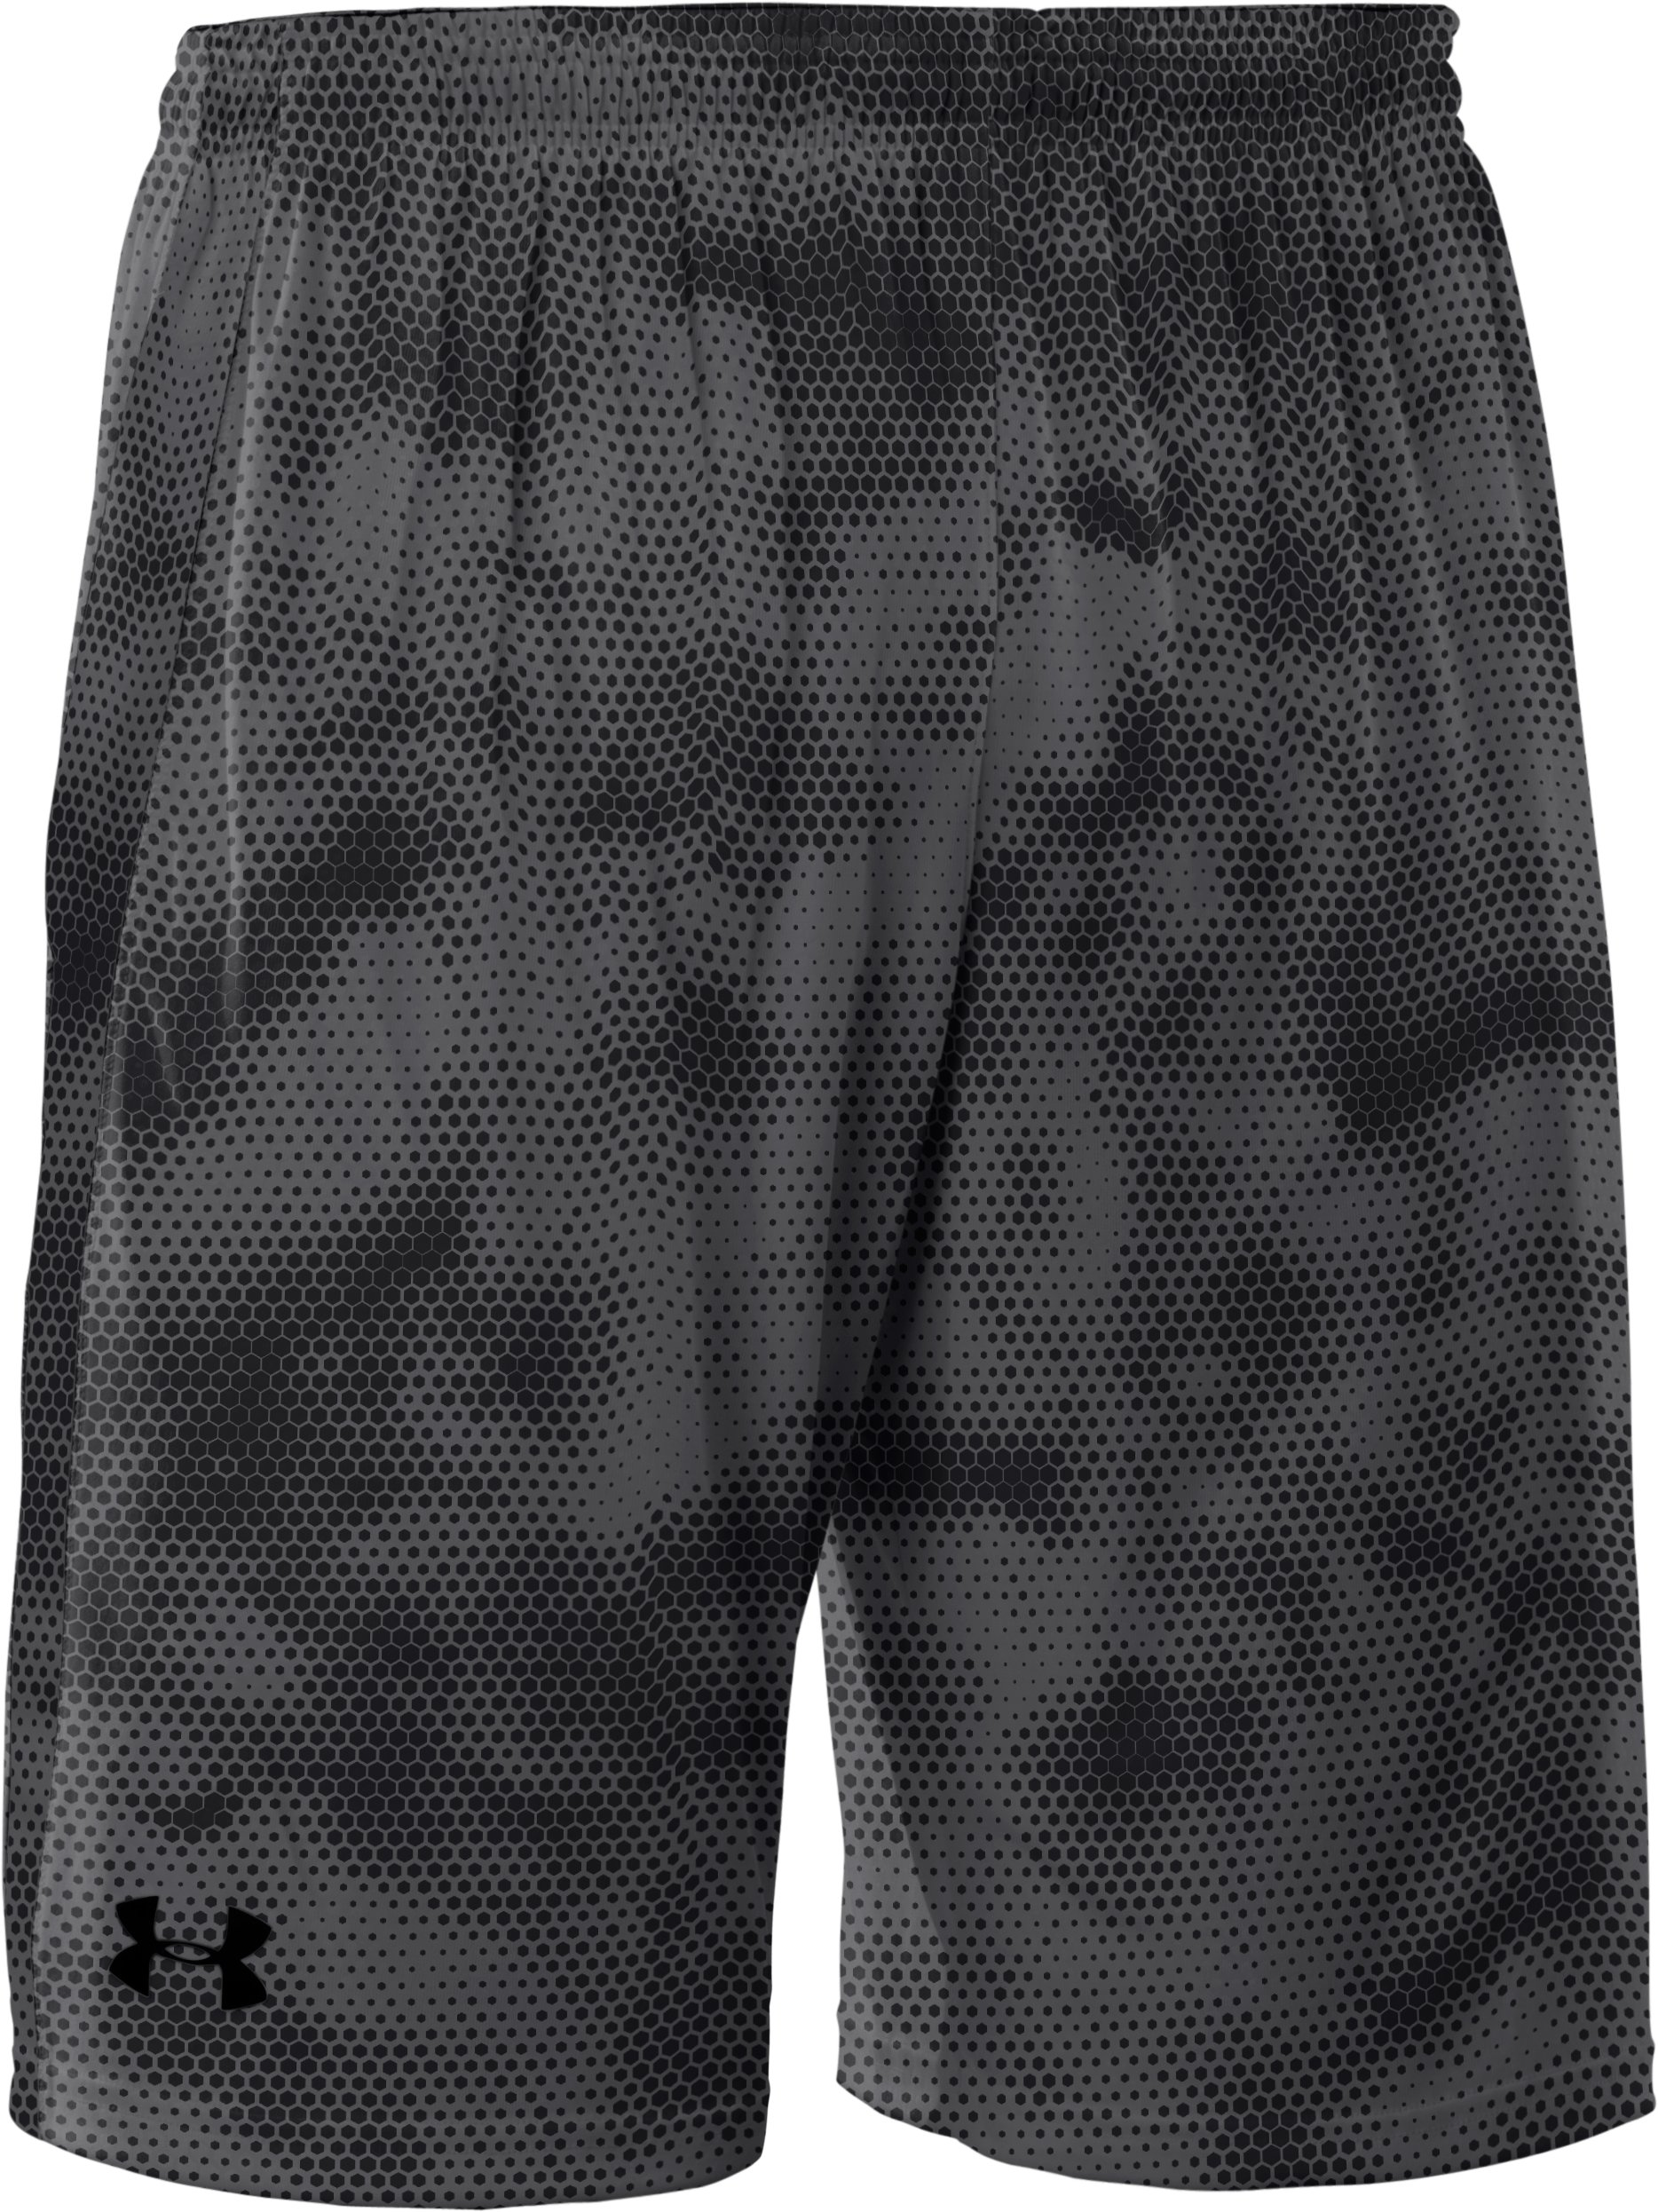 Men's UA Micro Printed Shorts, Graphite, undefined